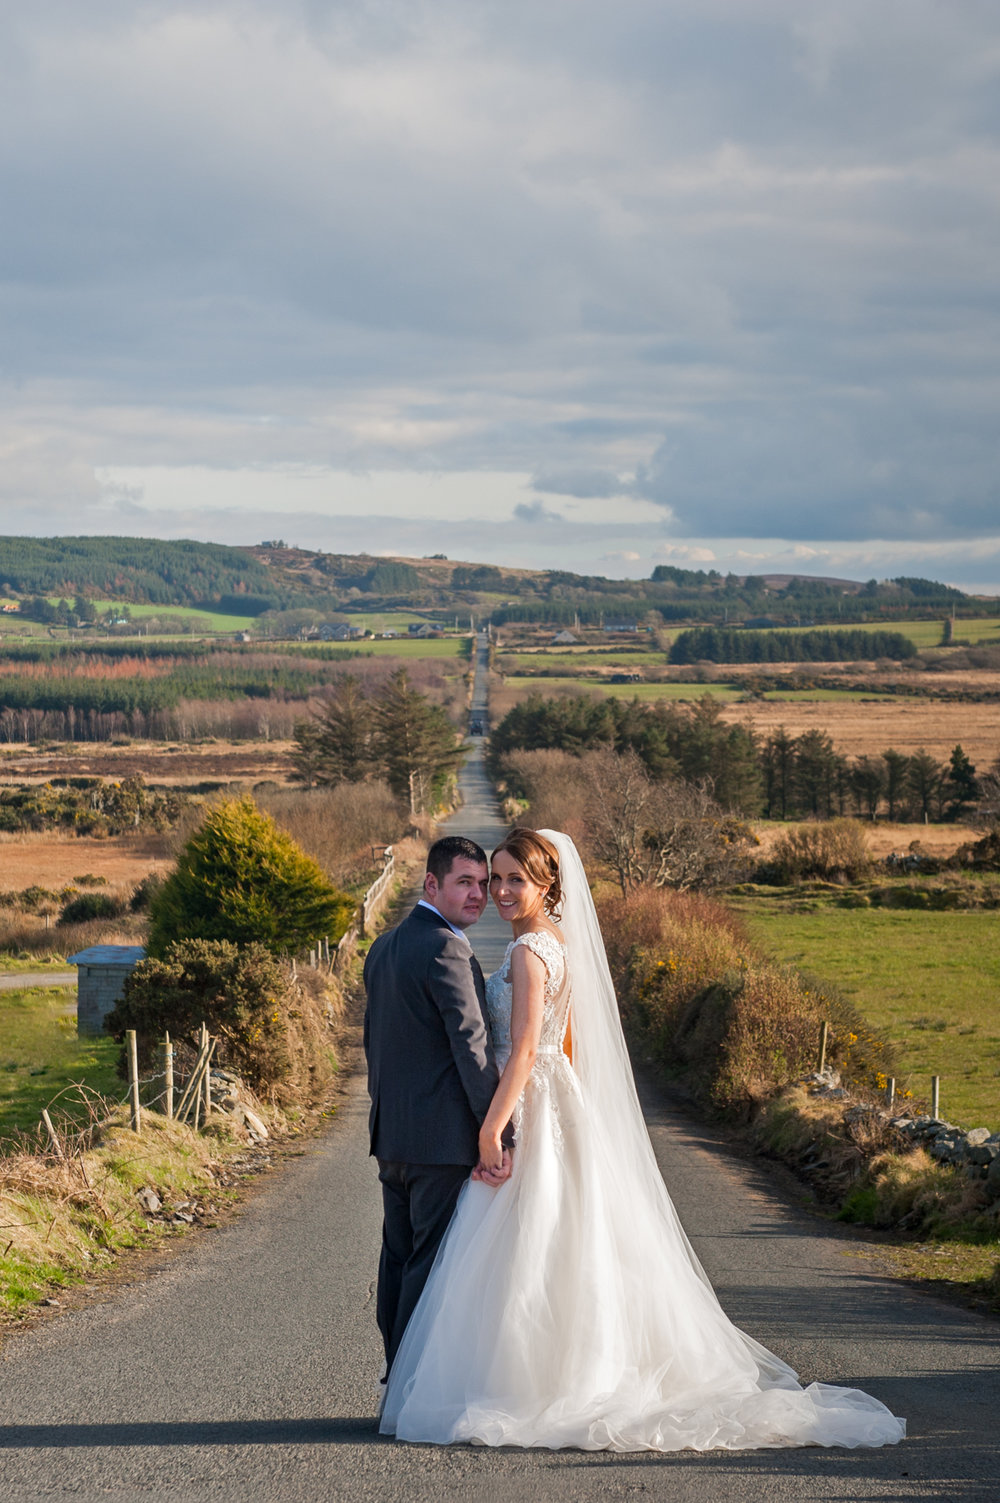 Michael_Gill_Photography_Wedding_Greencastle_Lousie_Jason_Donegal-17.jpg